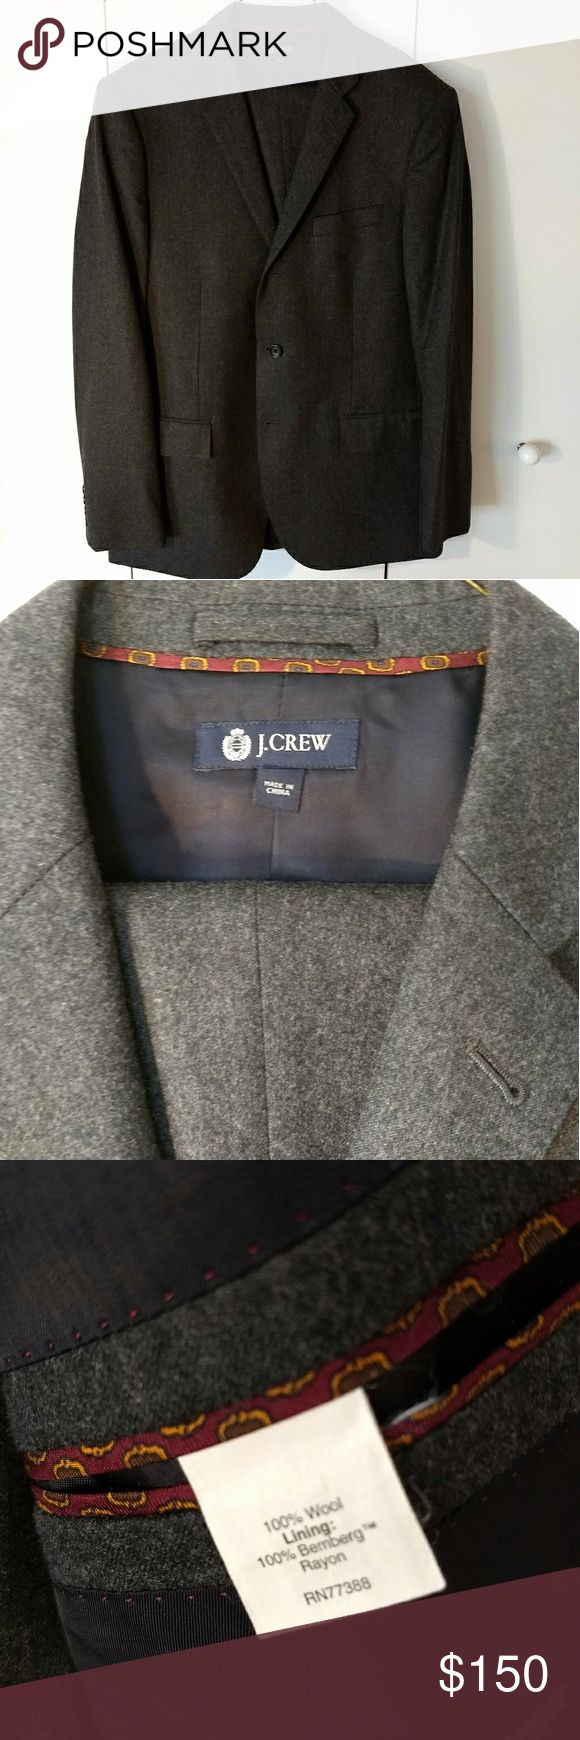 📣NWOT, J.CREW LUDLOW WOOL SUIT! ADD TO 🛒 Beautiful, 100% LUDLOW WOOL SUIT. 42R/ 33W, 32L. * SAME DAY SENT OUT*. MUST HAVE FELLAS!! j crew Suits & Blazers Suits